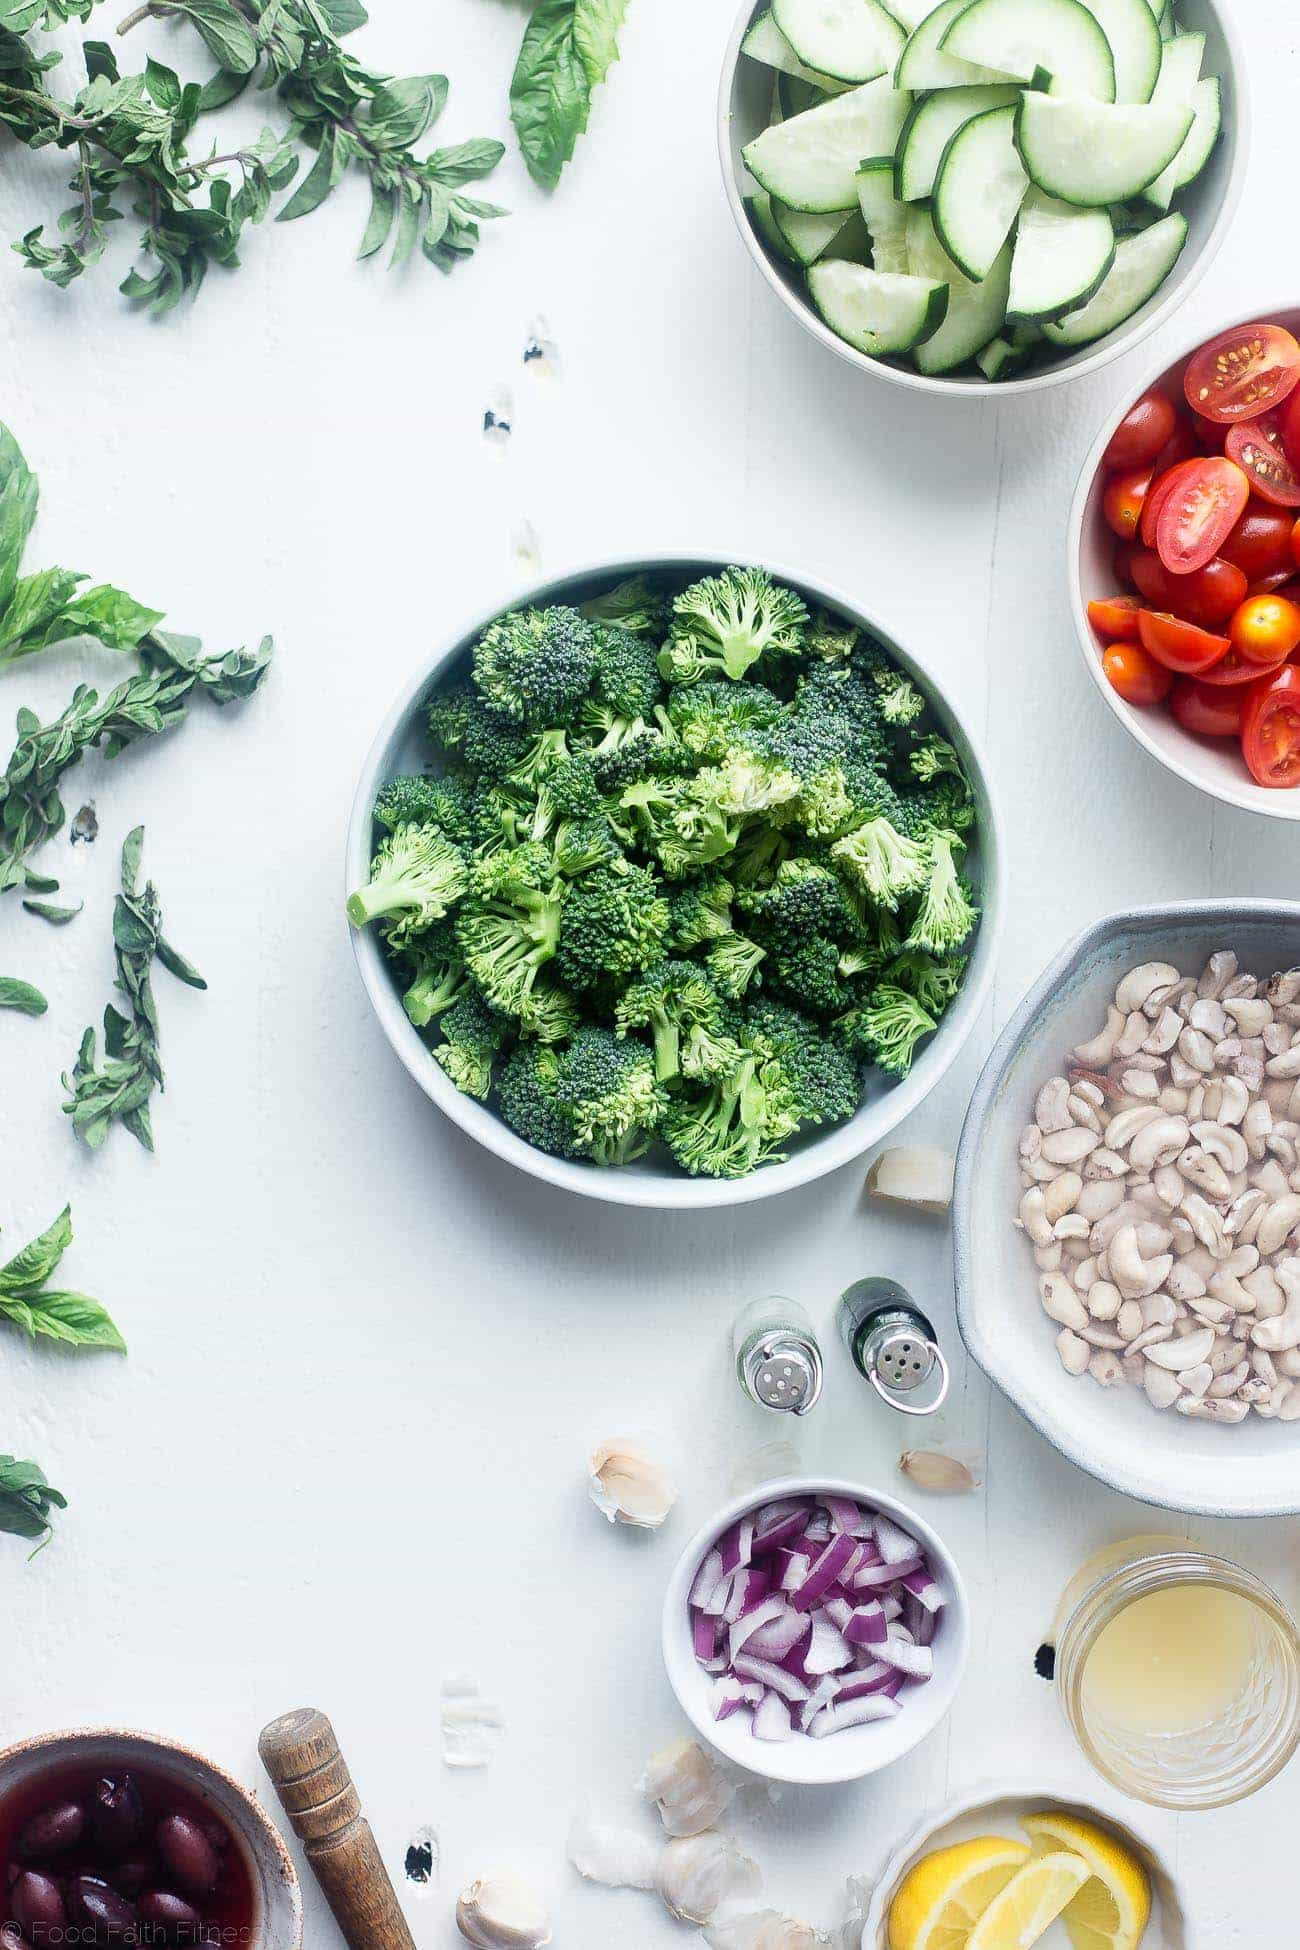 Greek Vegan Broccoli Salad - This low carb, raw broccoli salad is so creamy you'll never know it's vegan, paleo and whole30 compliant! It's an easy side dish that's perfect for spring potlucks! | Foodfaithfitness.com | @FoodFaithFit